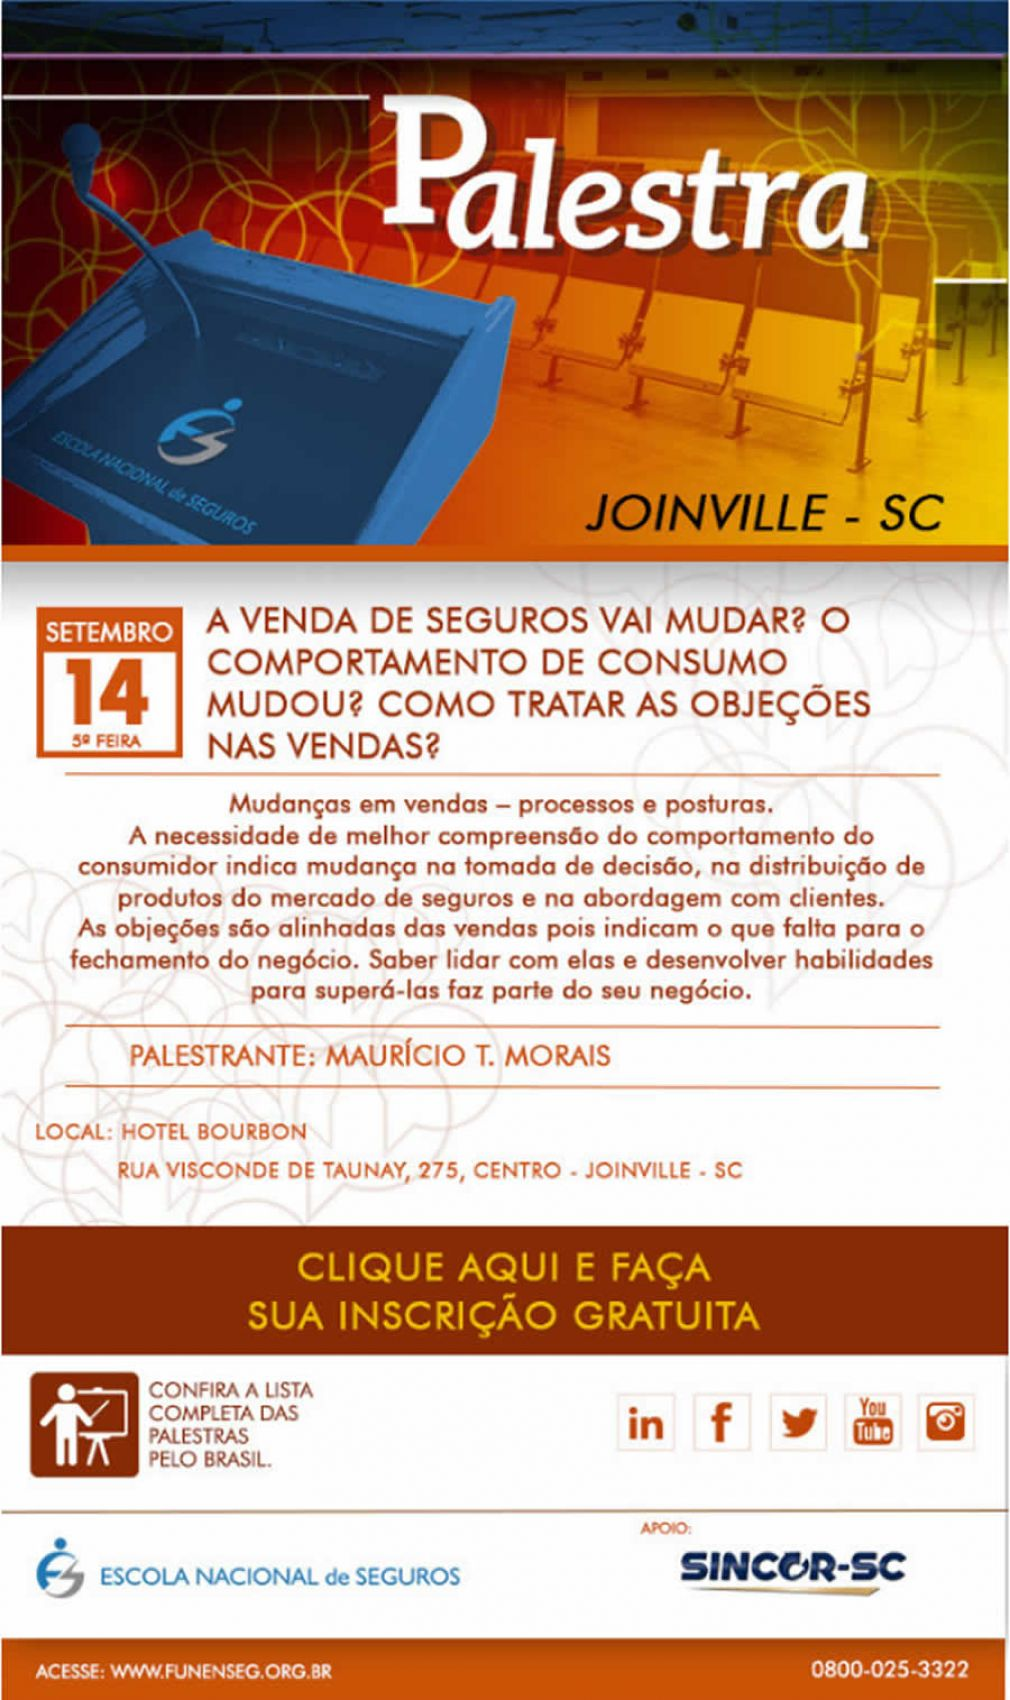 SincorSC Apoia Palestra em Joinville